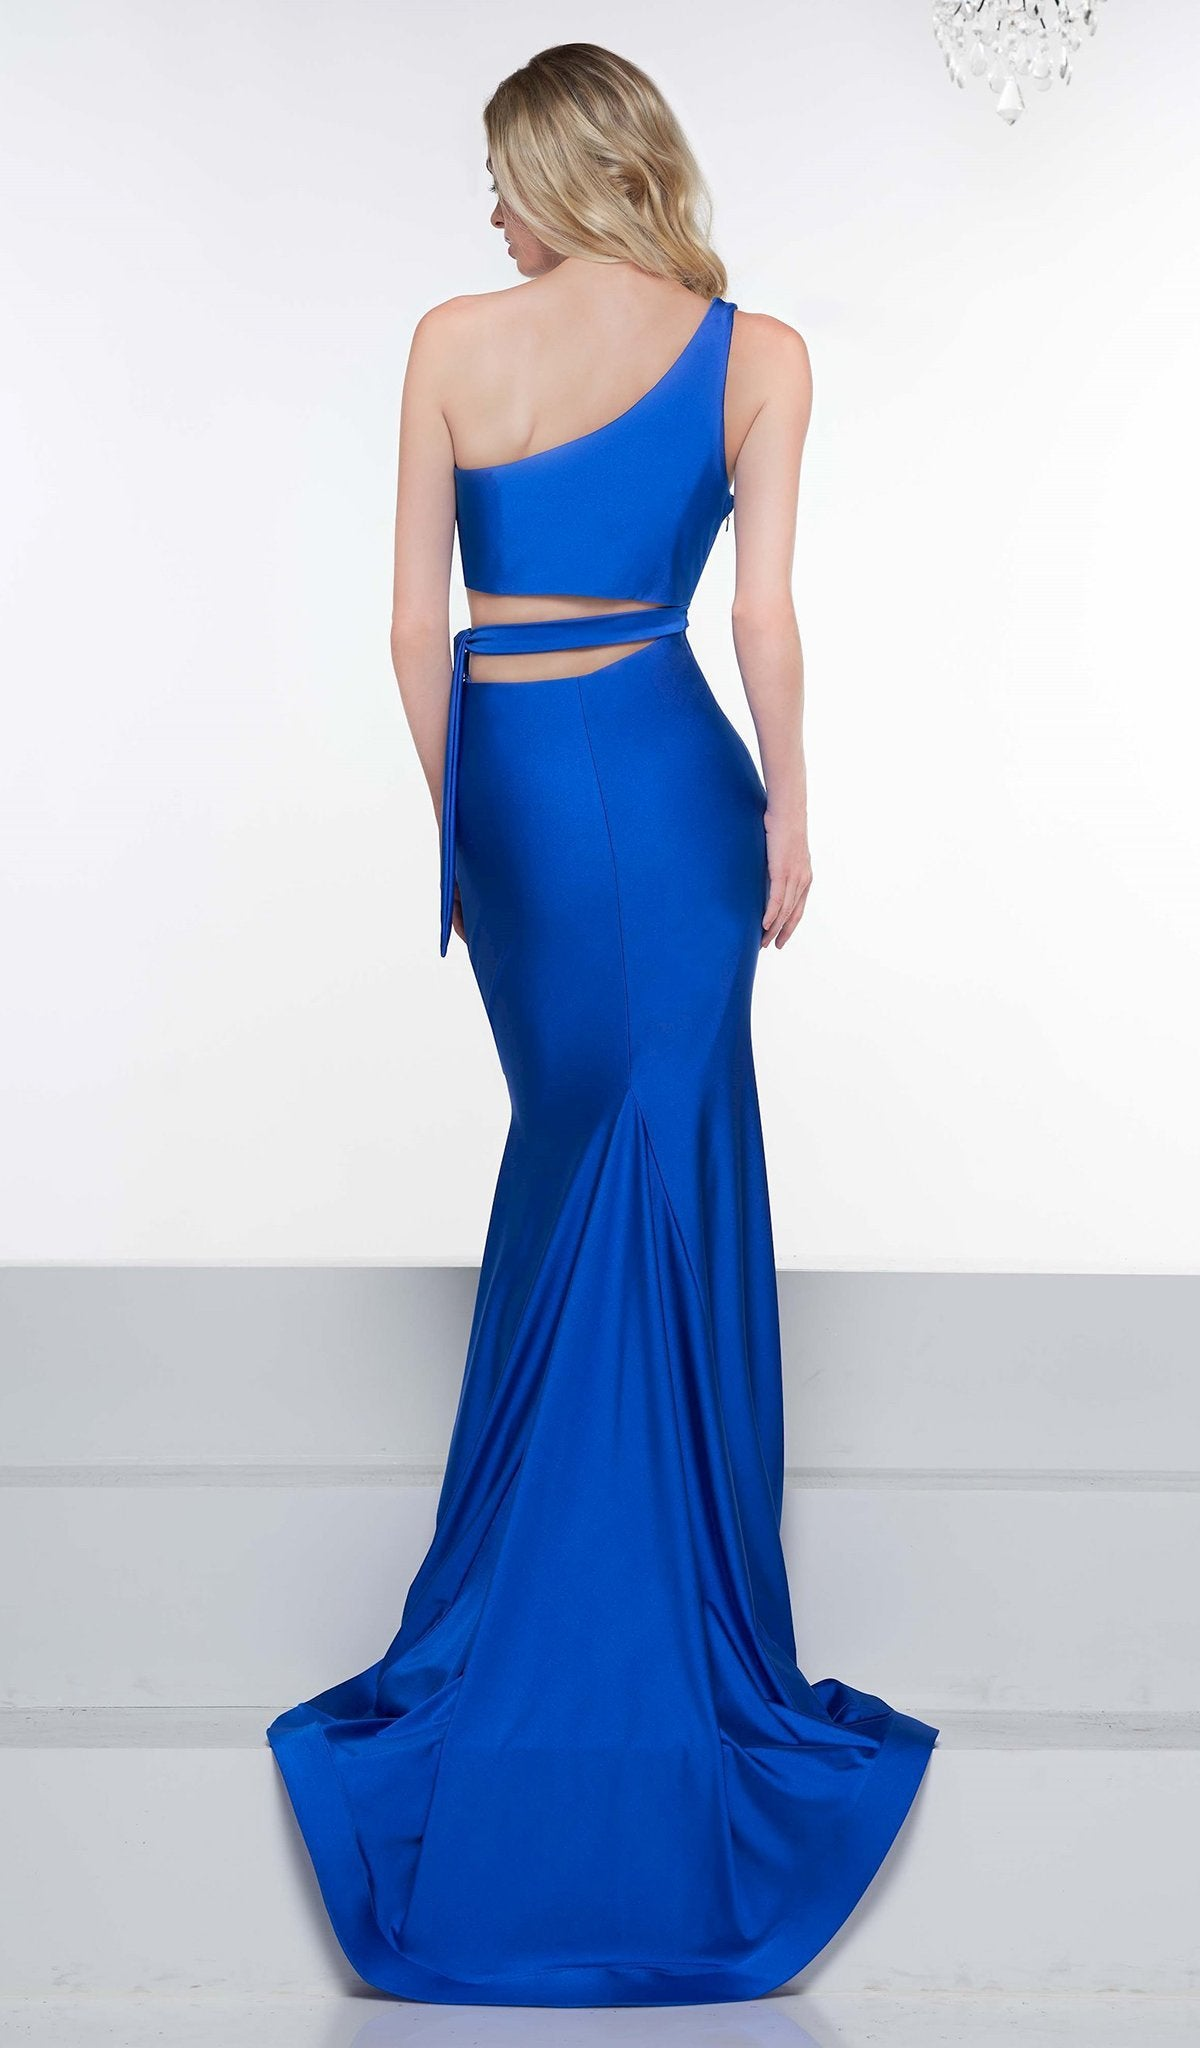 Colors Dress - 2137 Asymmetrical Exposed Midriff High Slit Gown In Blue